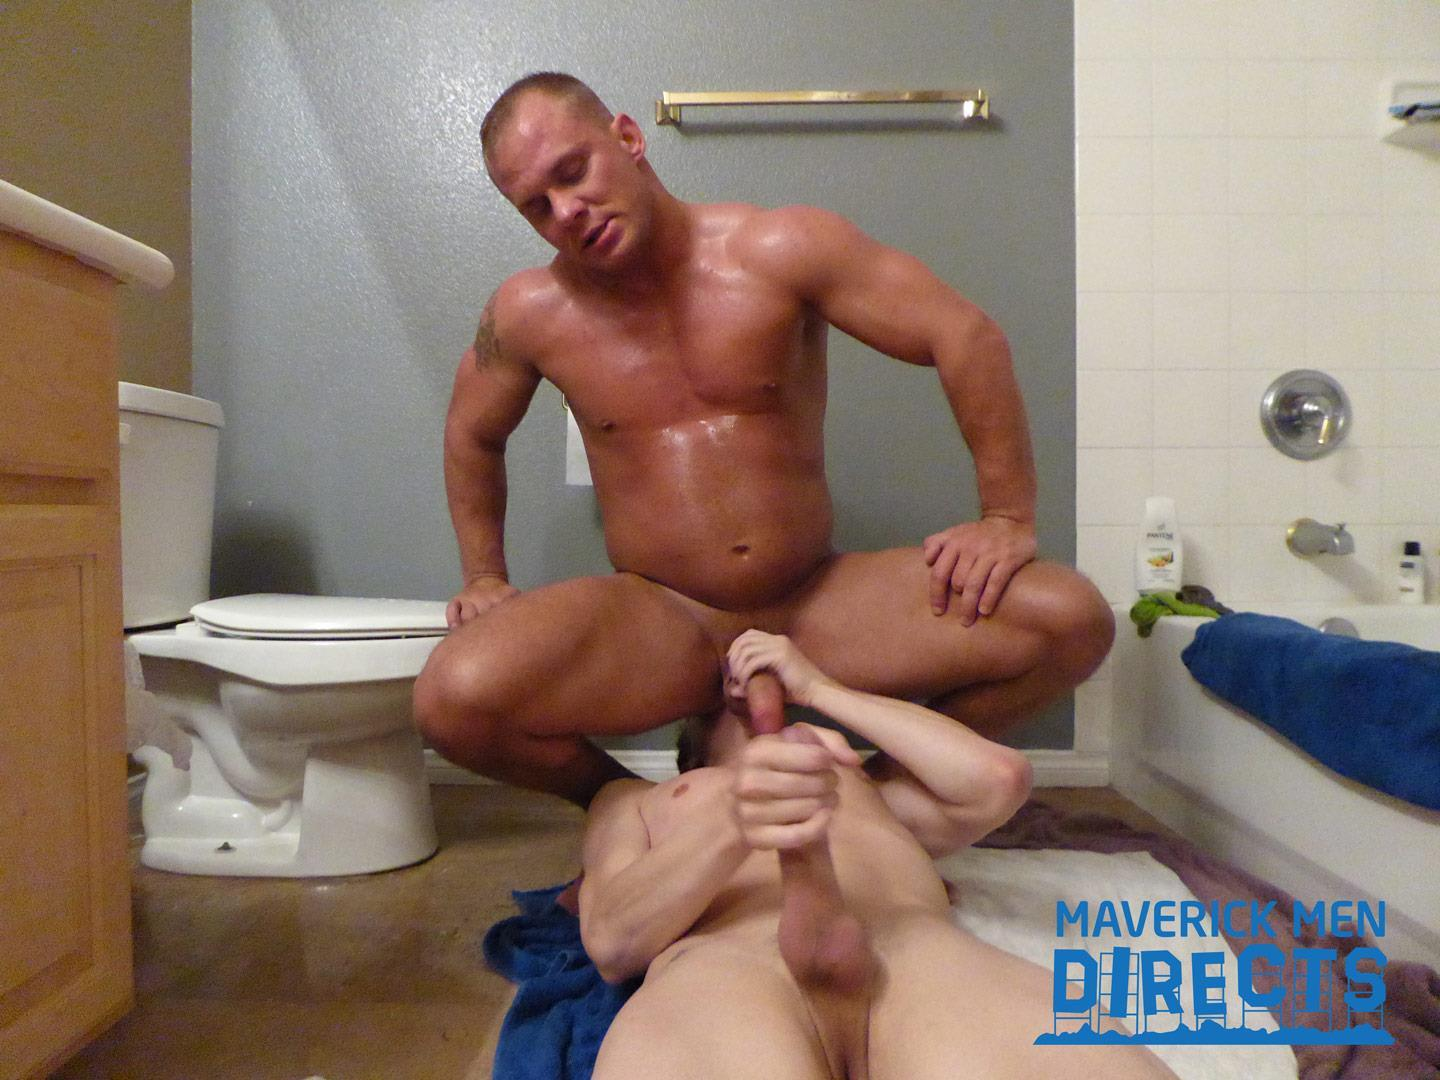 Maverick-Men-Directs-Big-Dick-Daddy-Fucking-A-Twink-In-The-Shower-Gay-Sex-12 Muscle Daddy Breeds His Sexy Twink Boy In The Shower